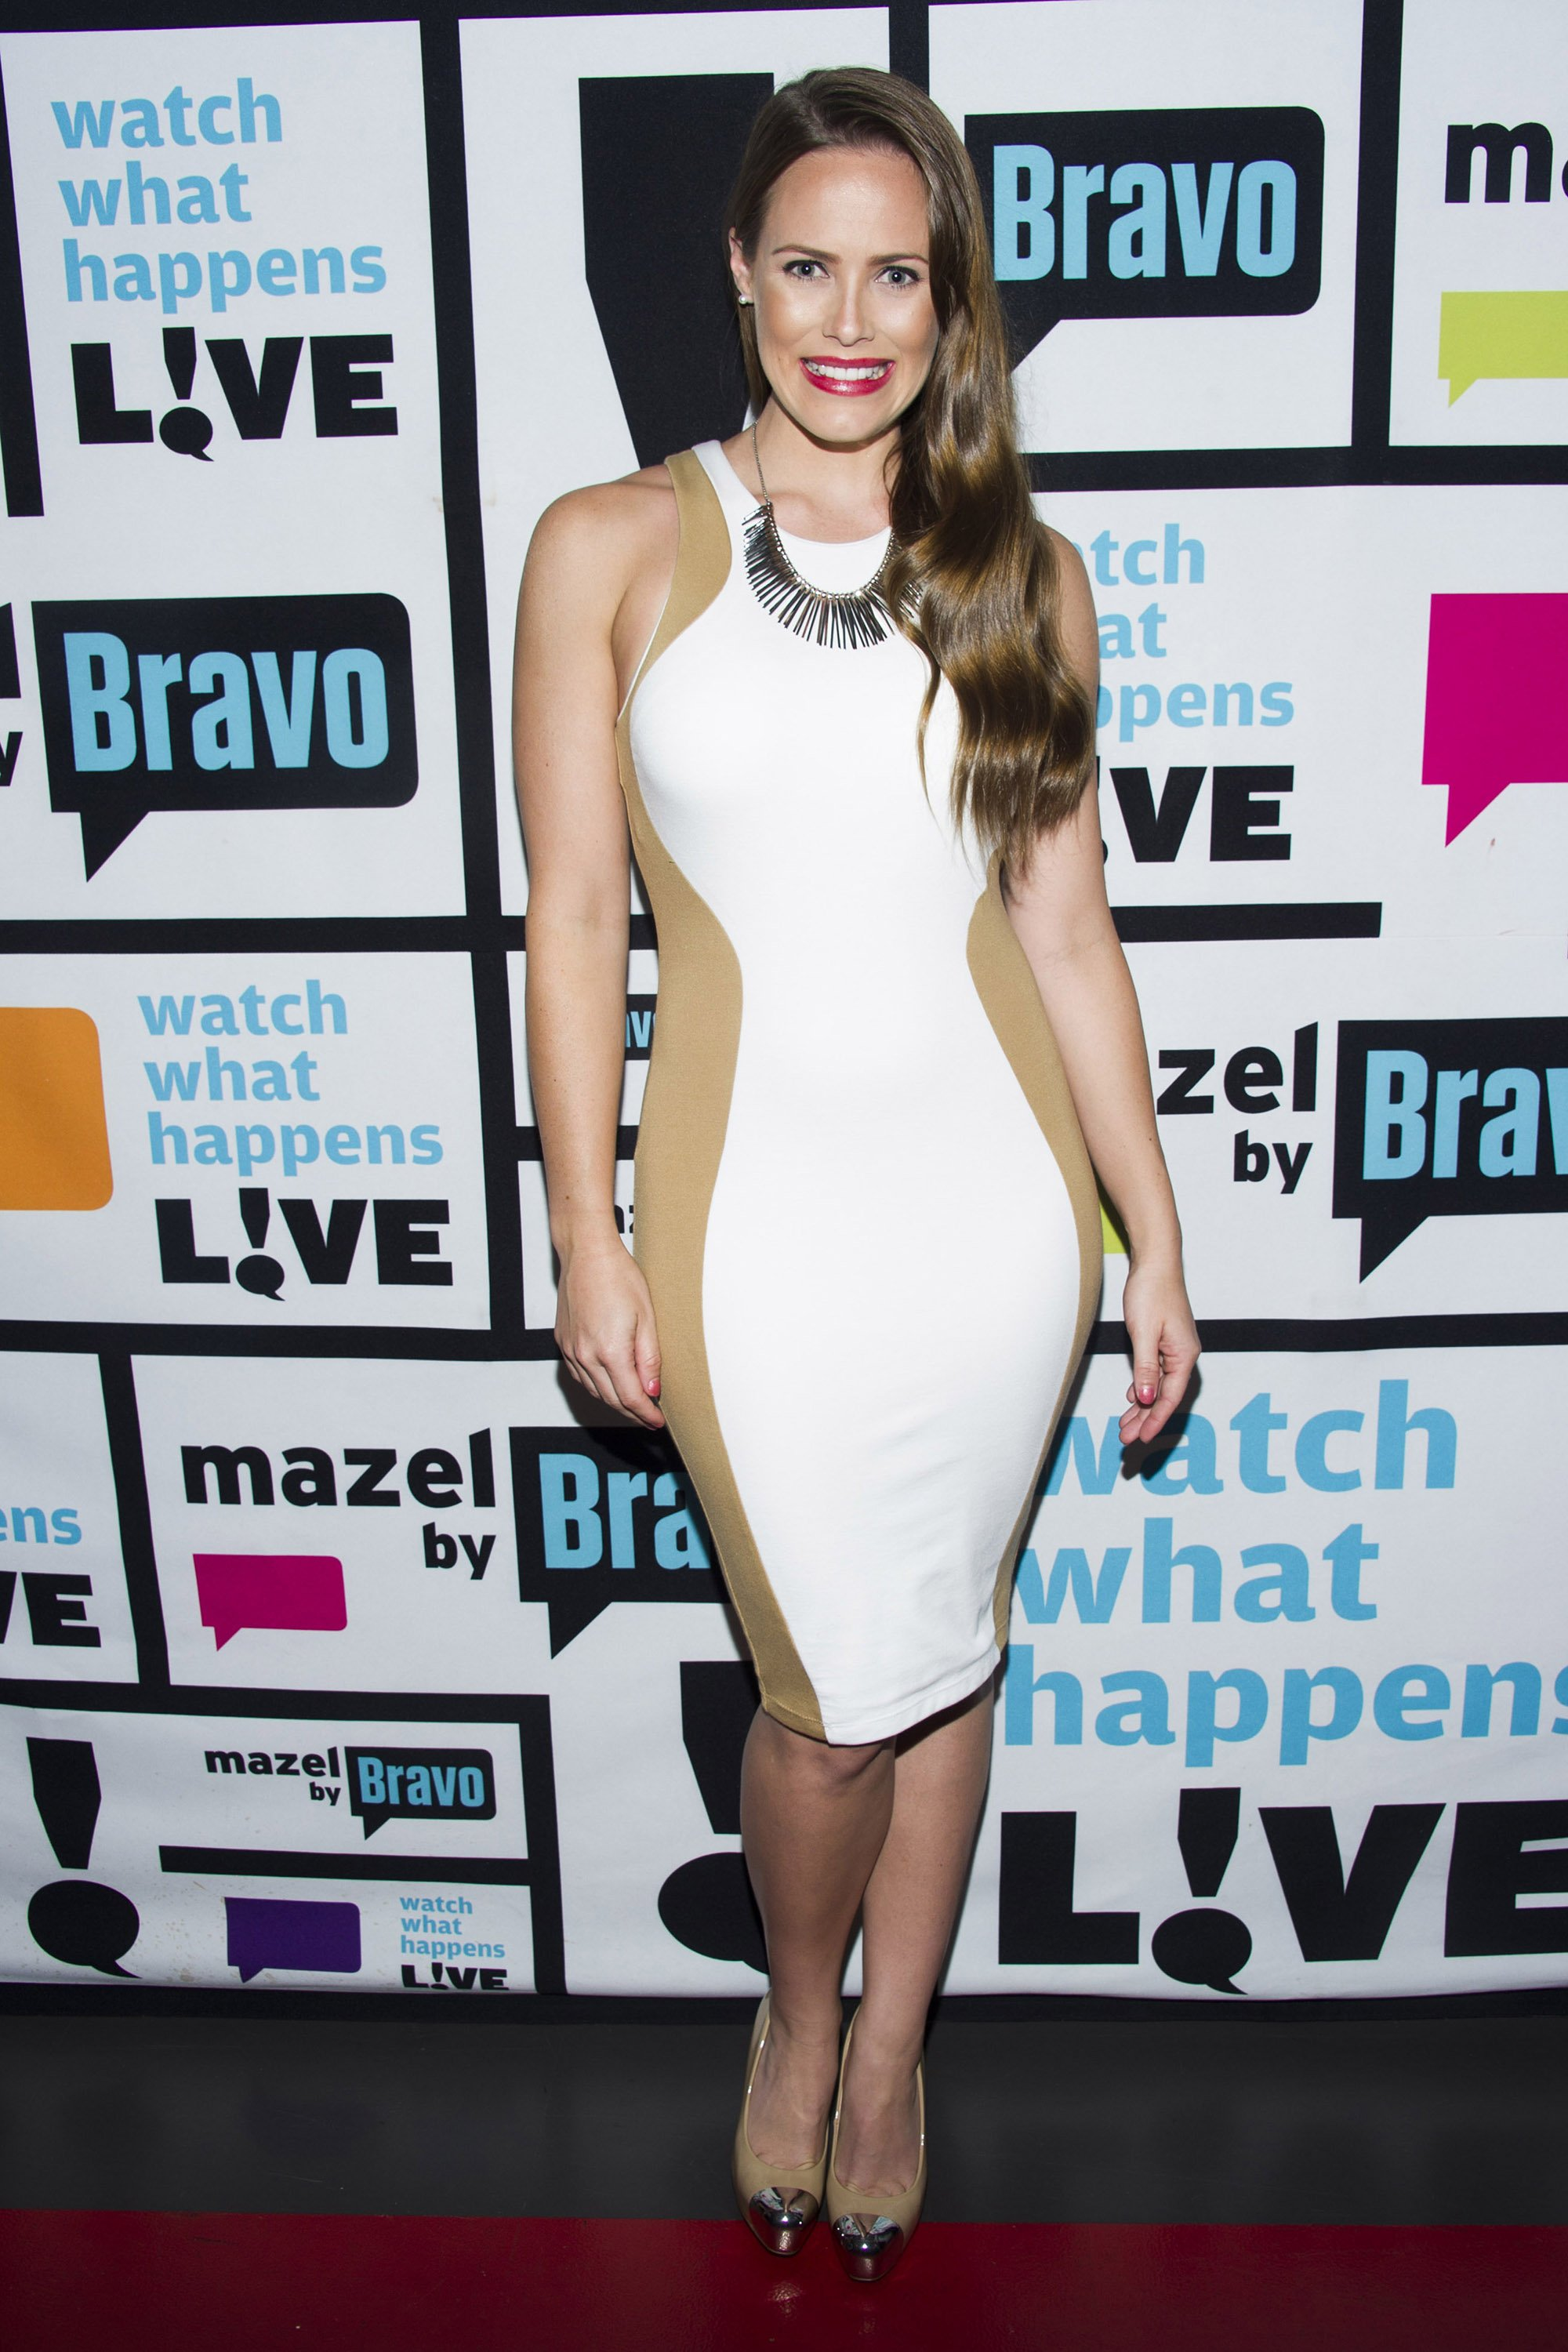 """Kara Keough on season 10 of """"Watch What Happens Live"""" on June 24, 2013